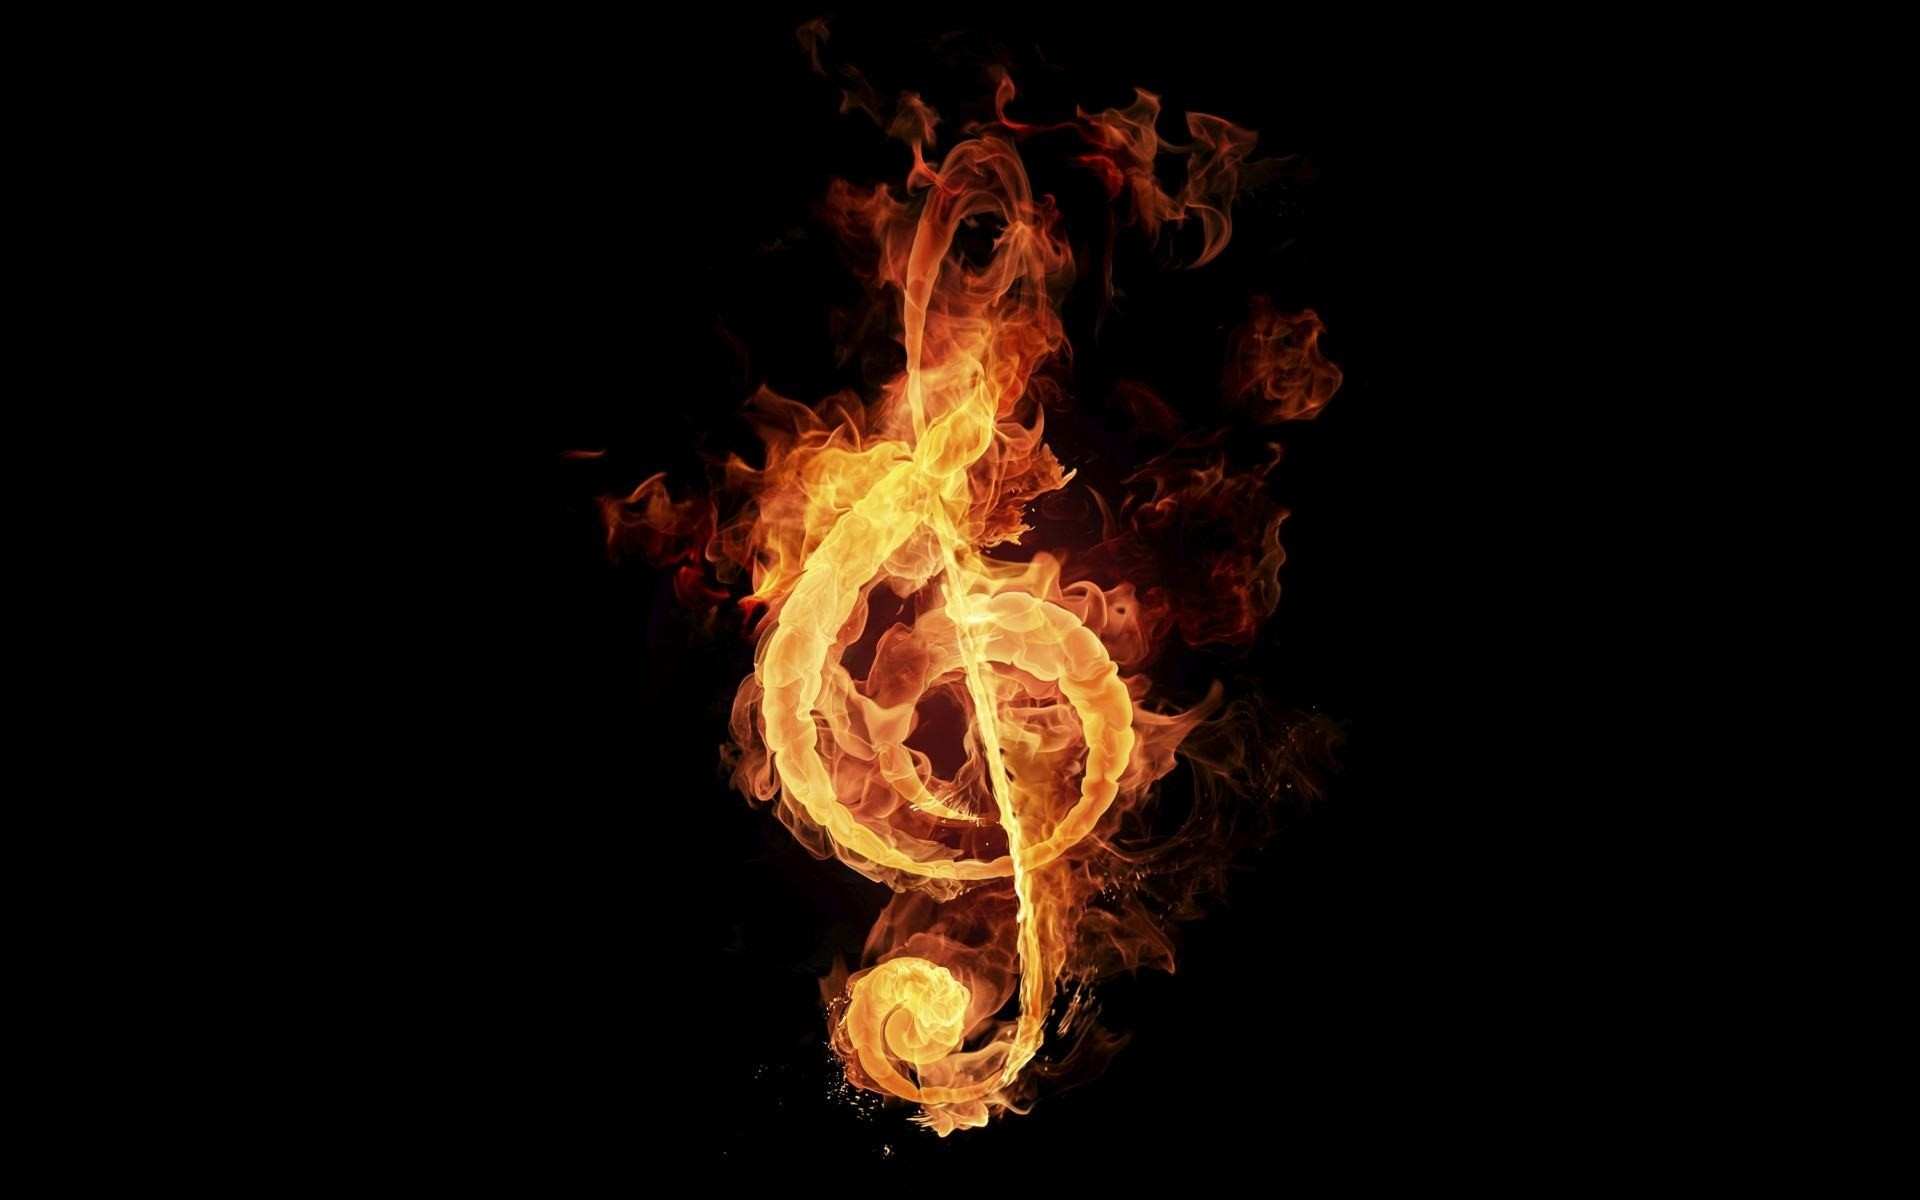 Wallpapers Backgrounds – Music Fire Artwork Black Background